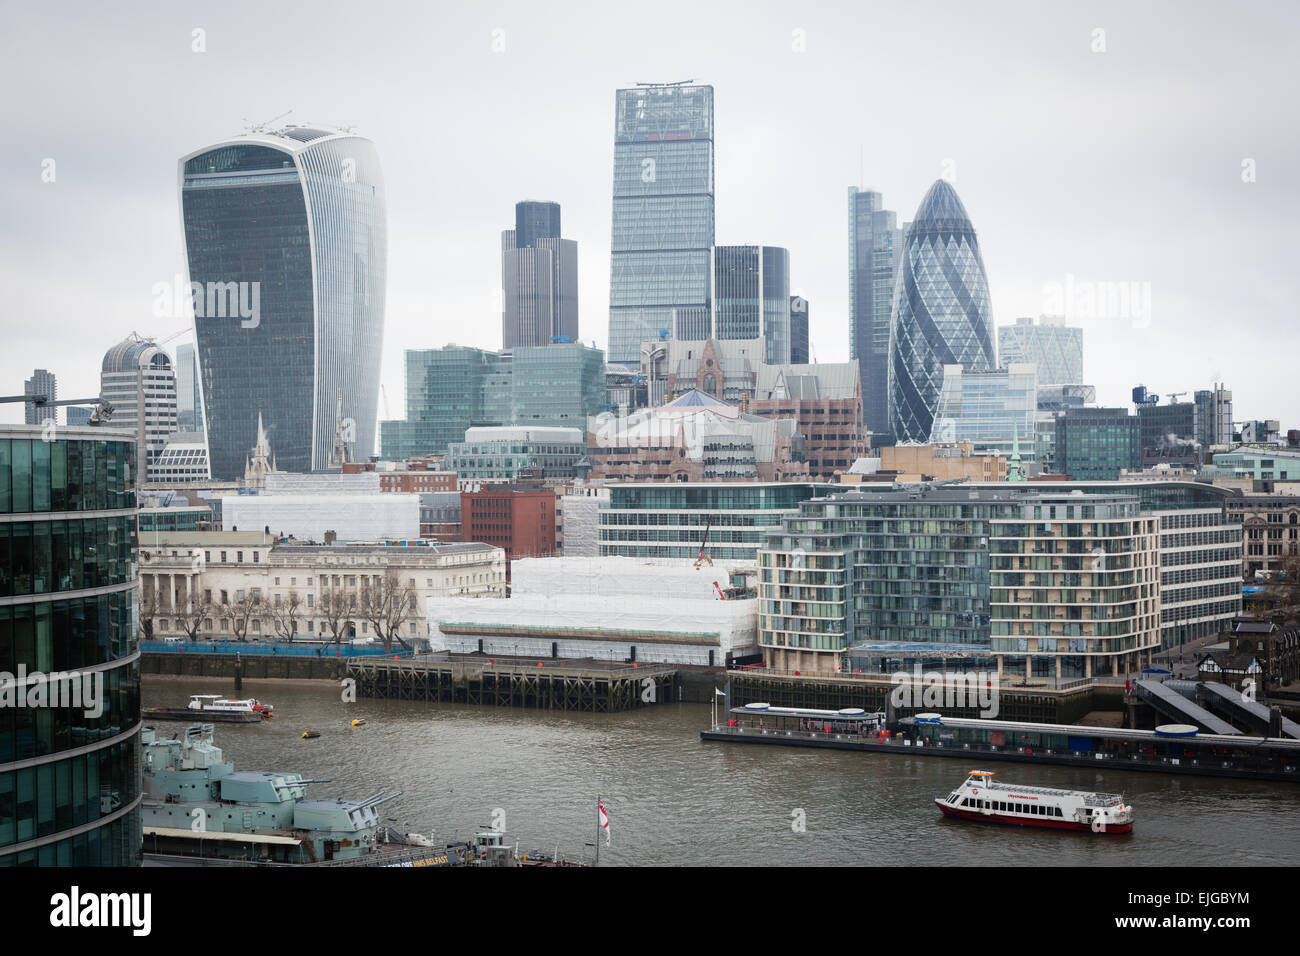 Skyscrapers in the City of London seen from Tower Bridge area on the South Bank - Stock Image